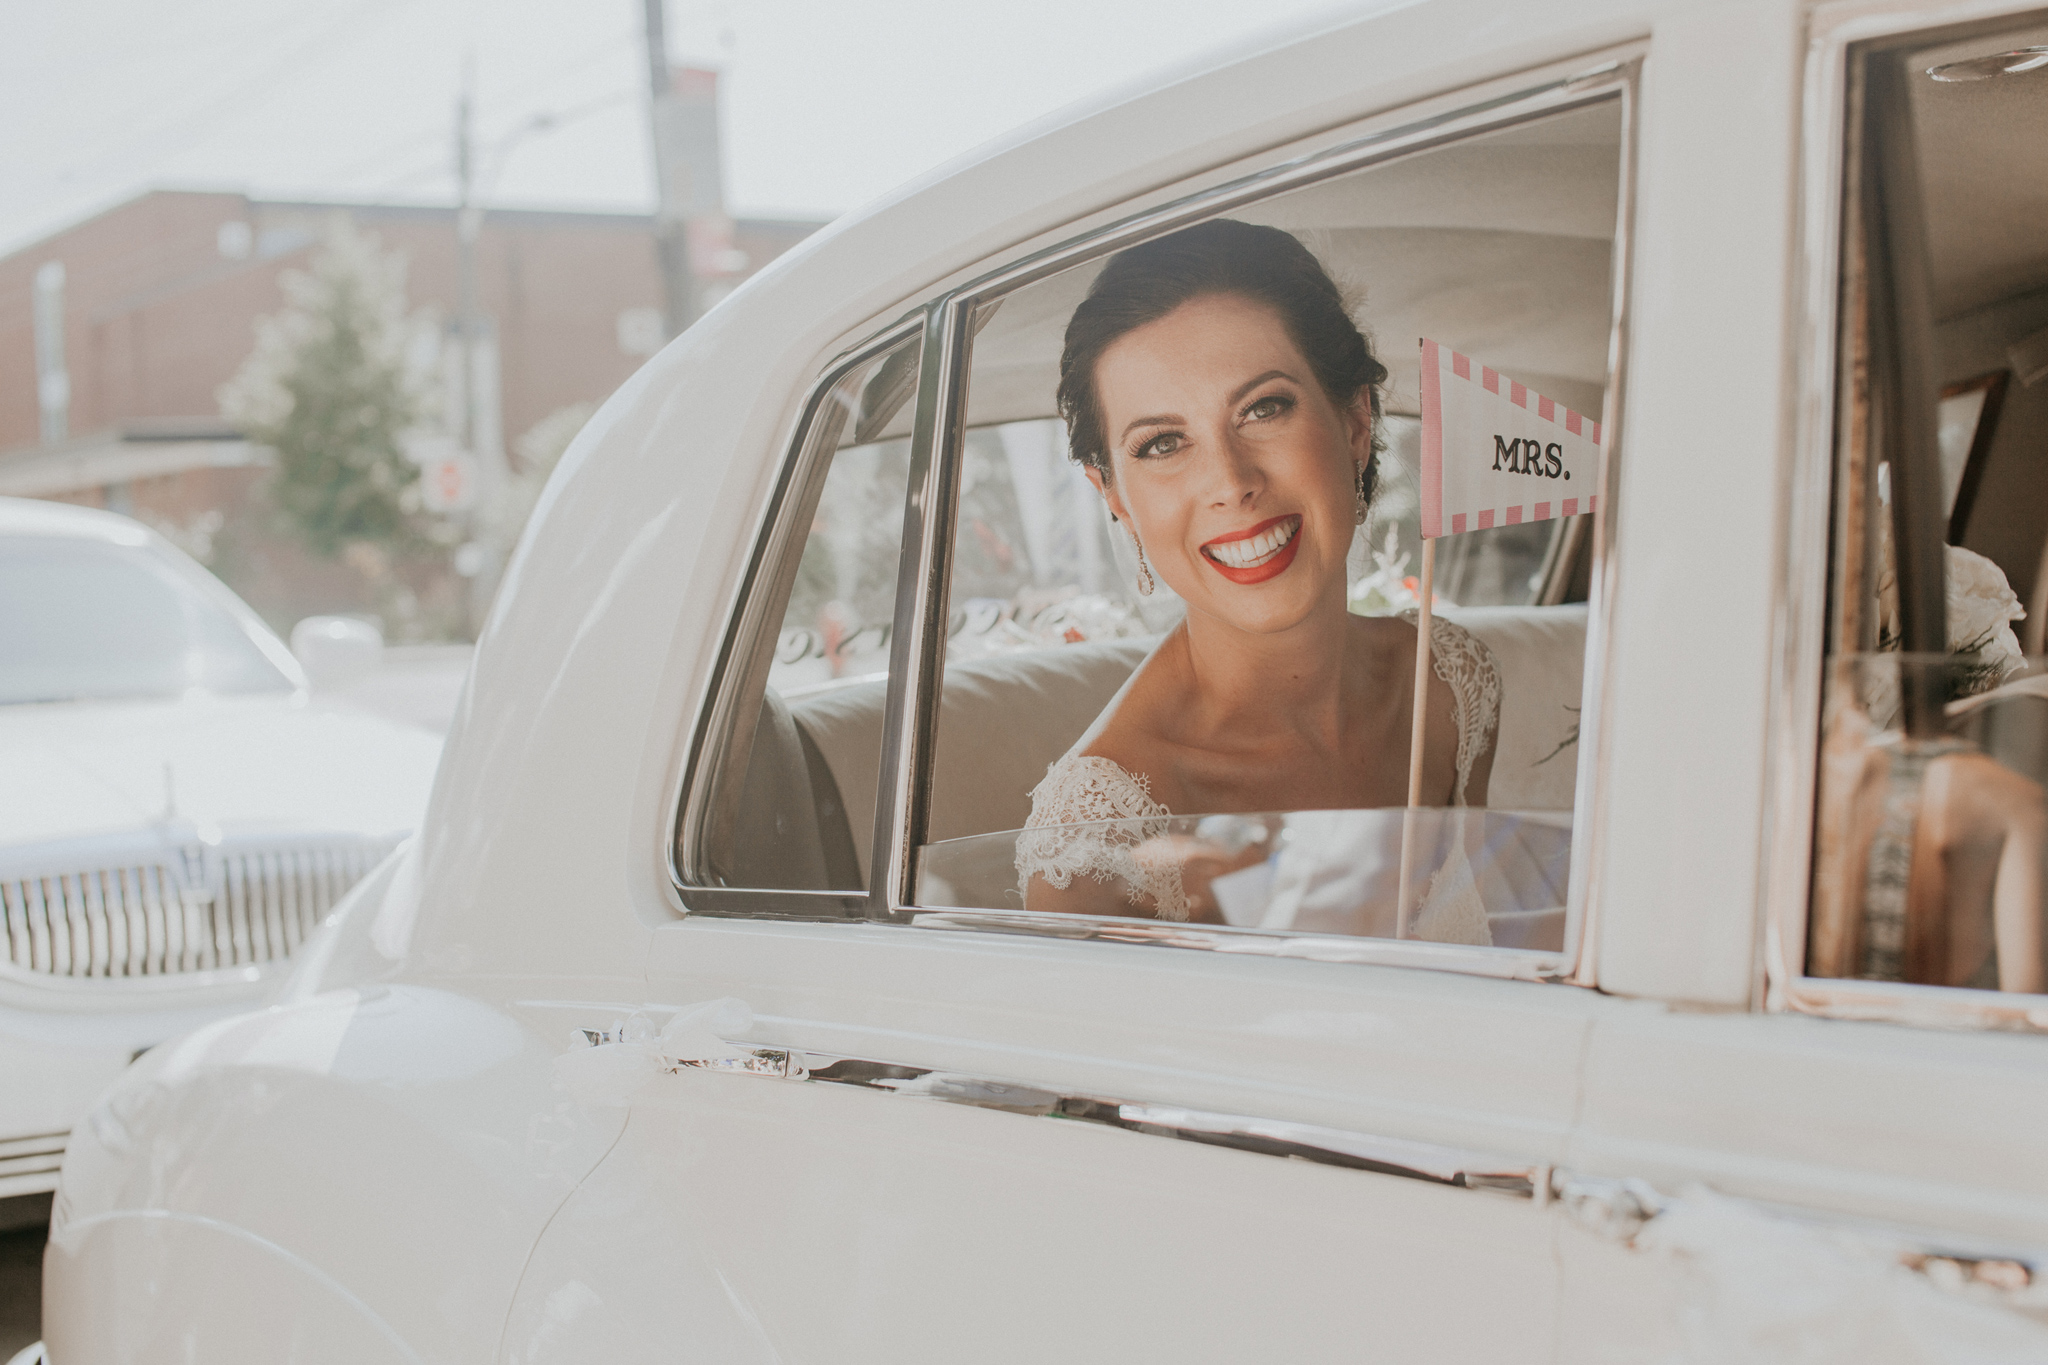 Happy bride smiling in car on wedding day